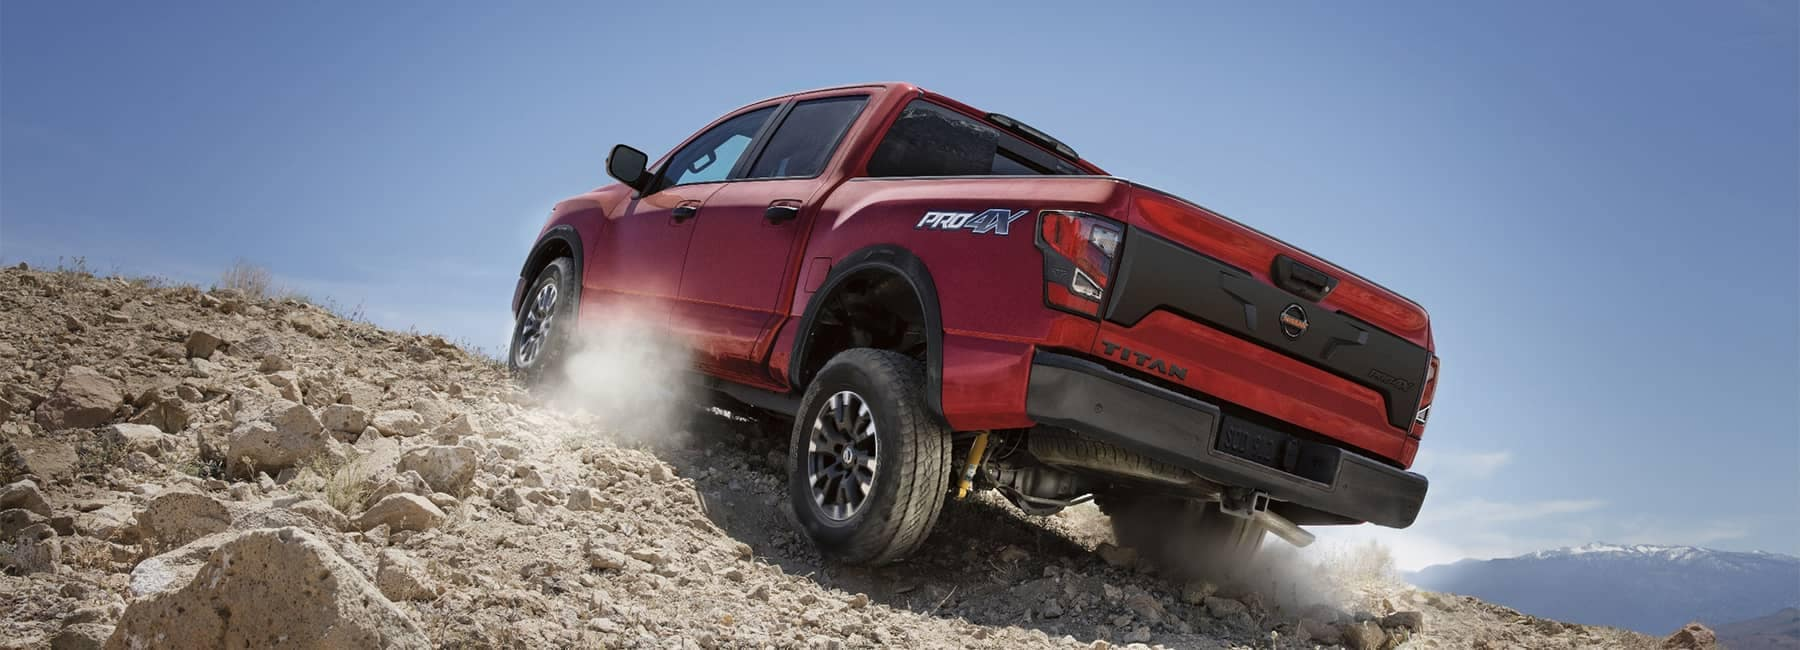 Rearview of a 2021 Red Nissan Titan truck driving up rocky terrain